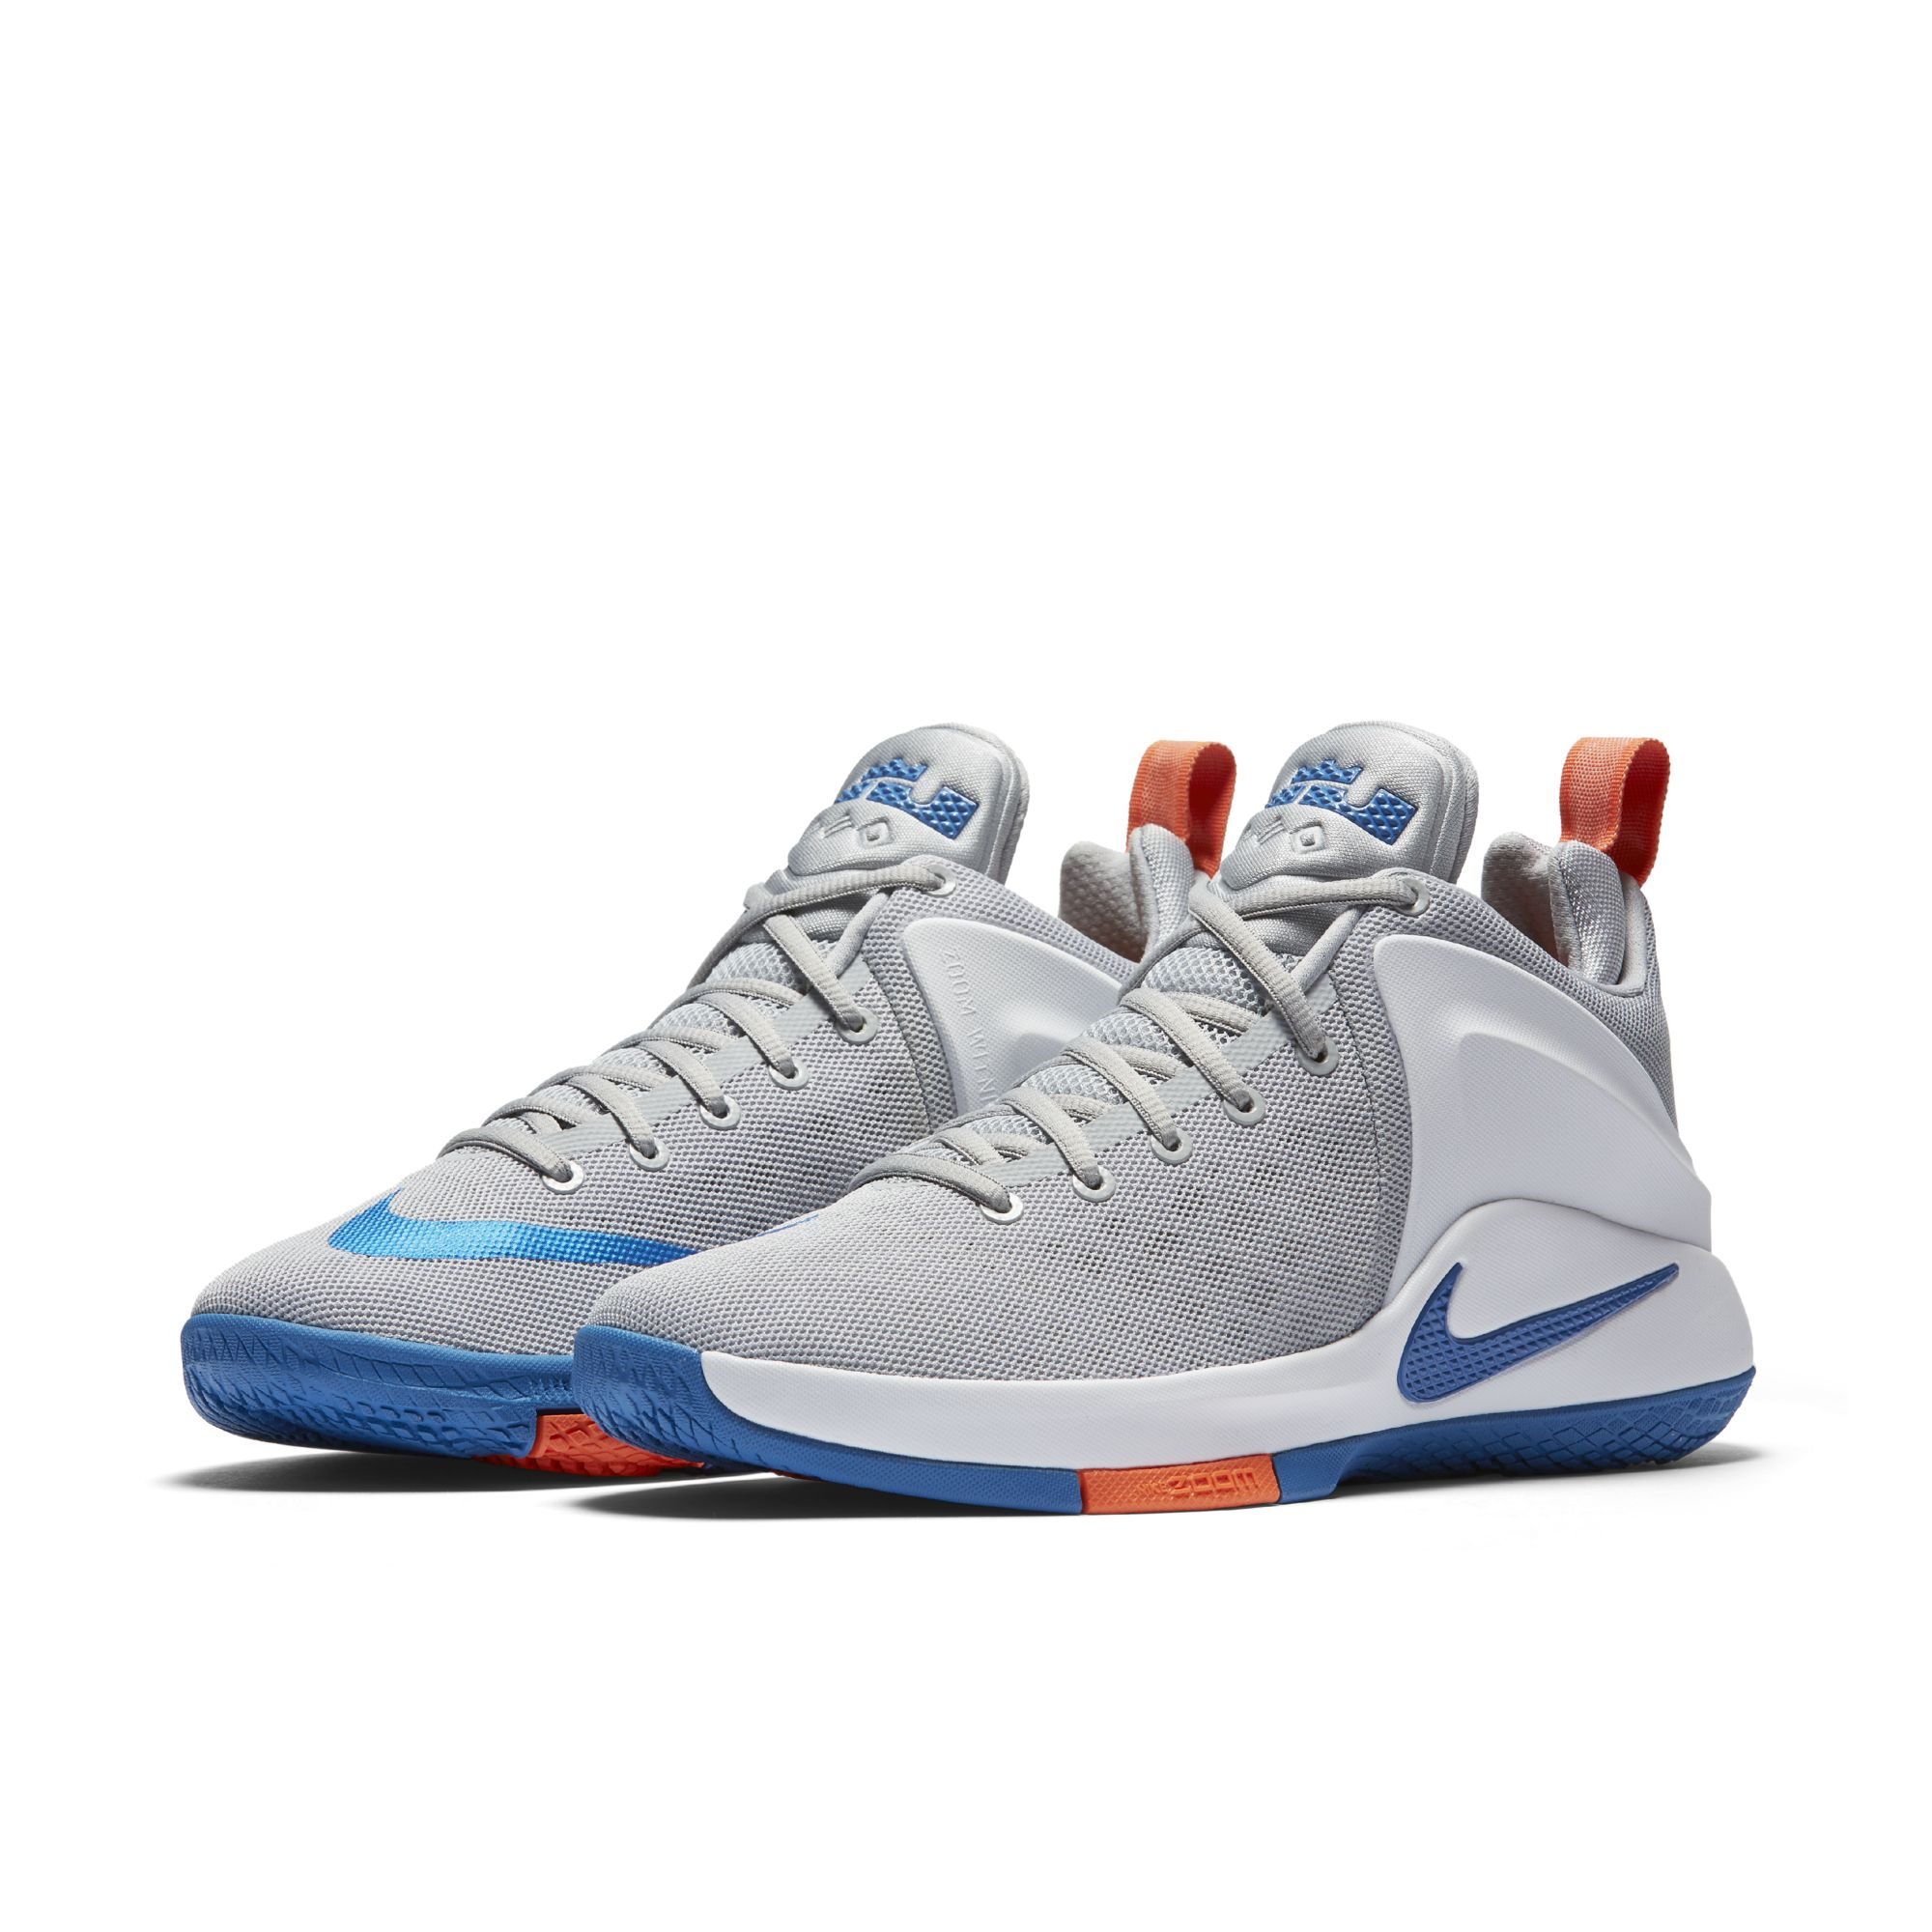 7d2b71e9c062 Nike Zoom Witness - CoolGrey - Full - WearTesters